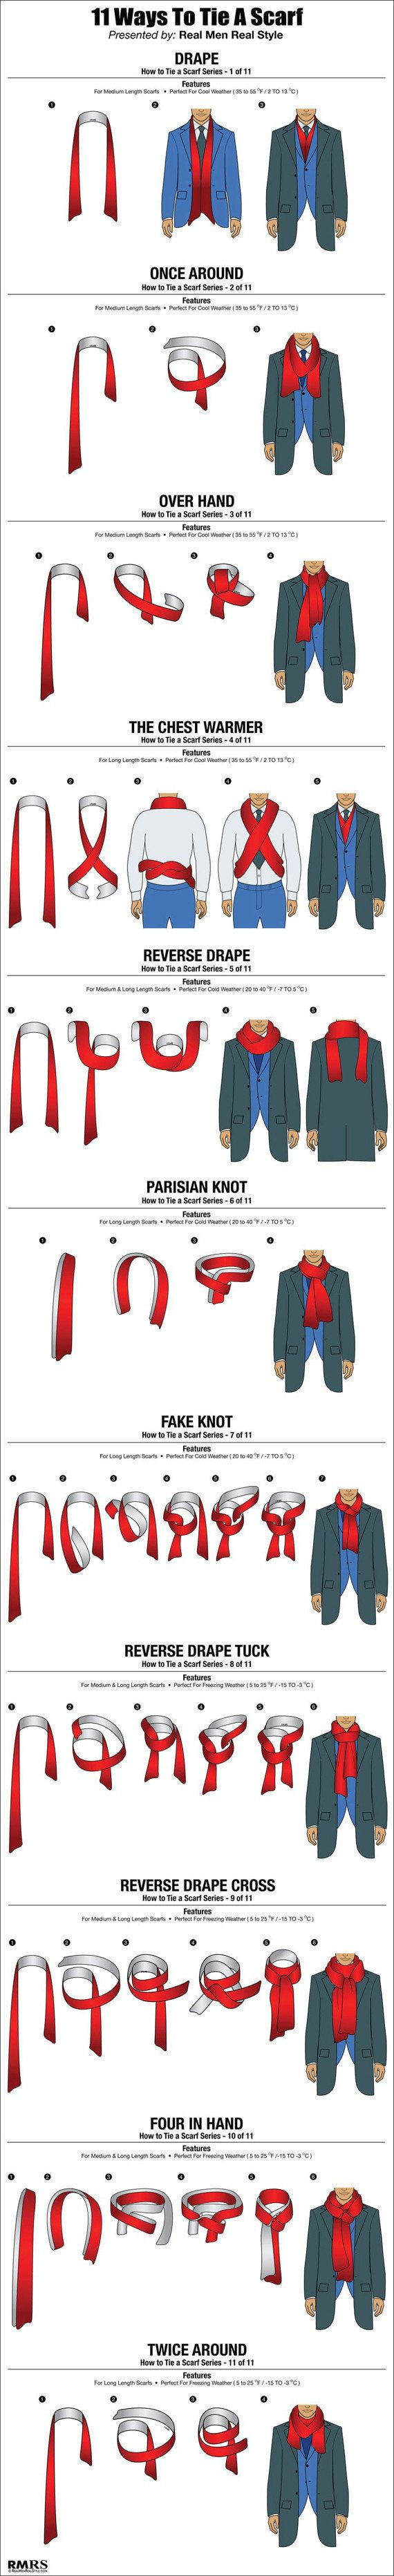 Here are 11 ways a guy can tie his scarf huffpost courtesy ccuart Choice Image